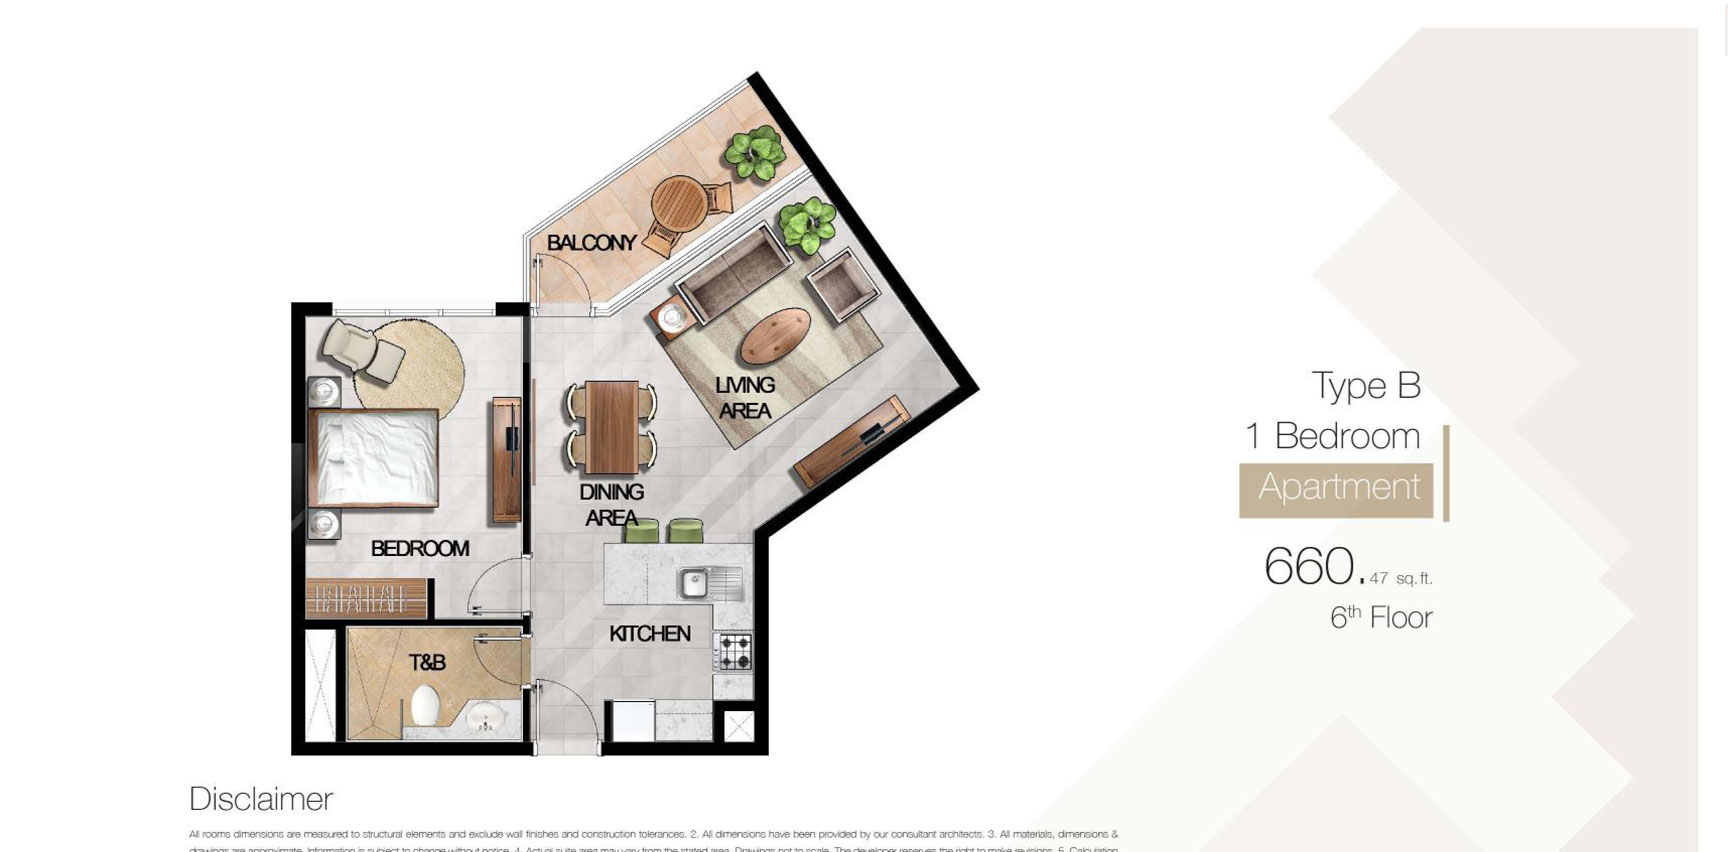 1 Bedroom Type B, Size 660.47 sq.ft